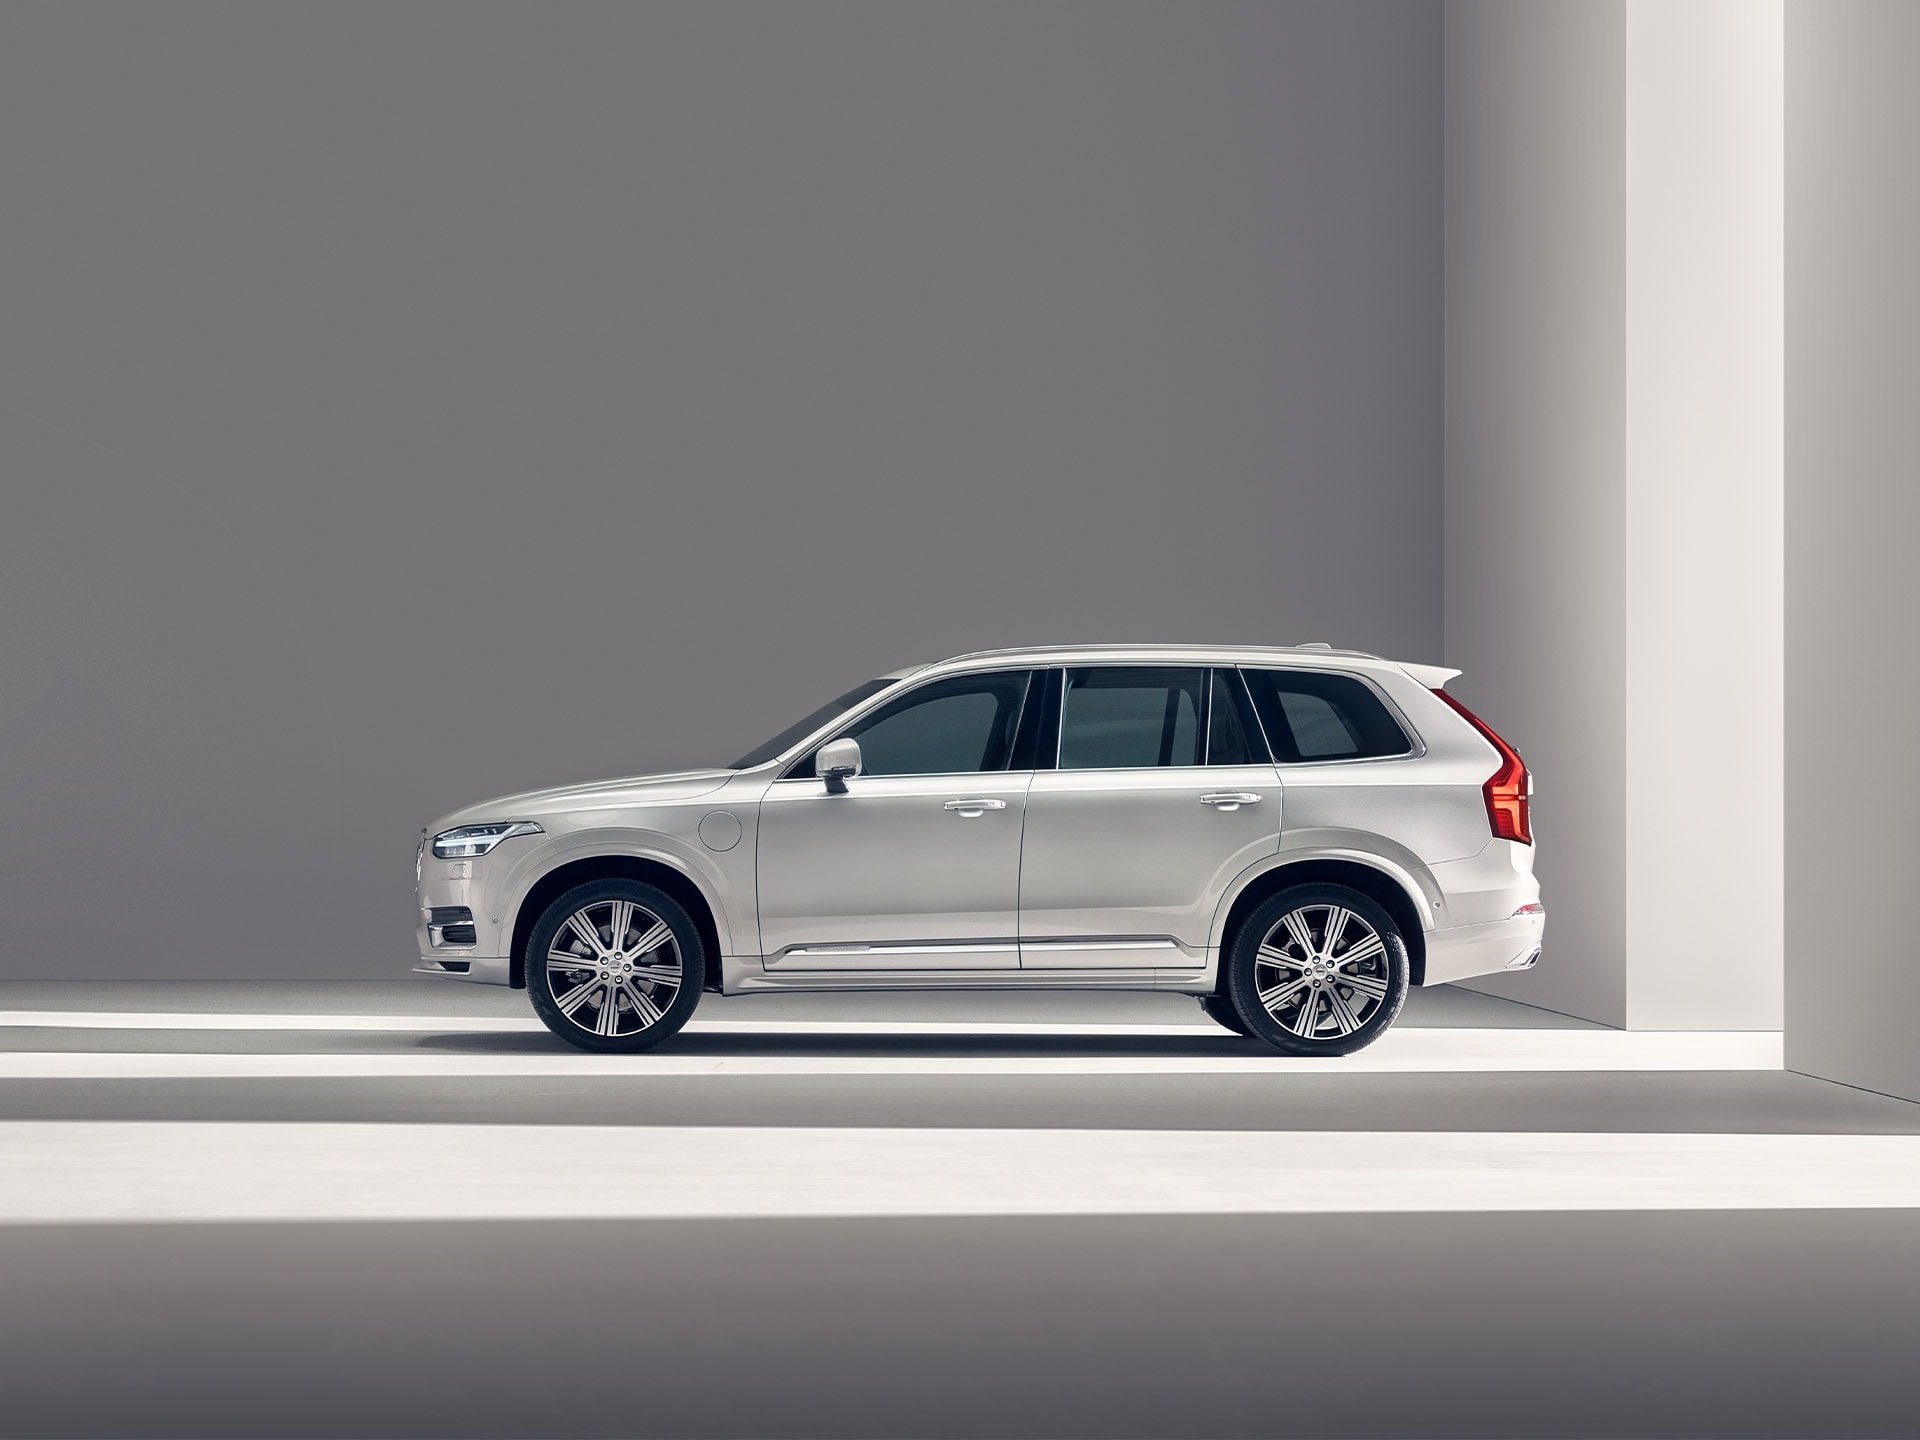 SUV Volvo XC90 Recharge blanc en charge